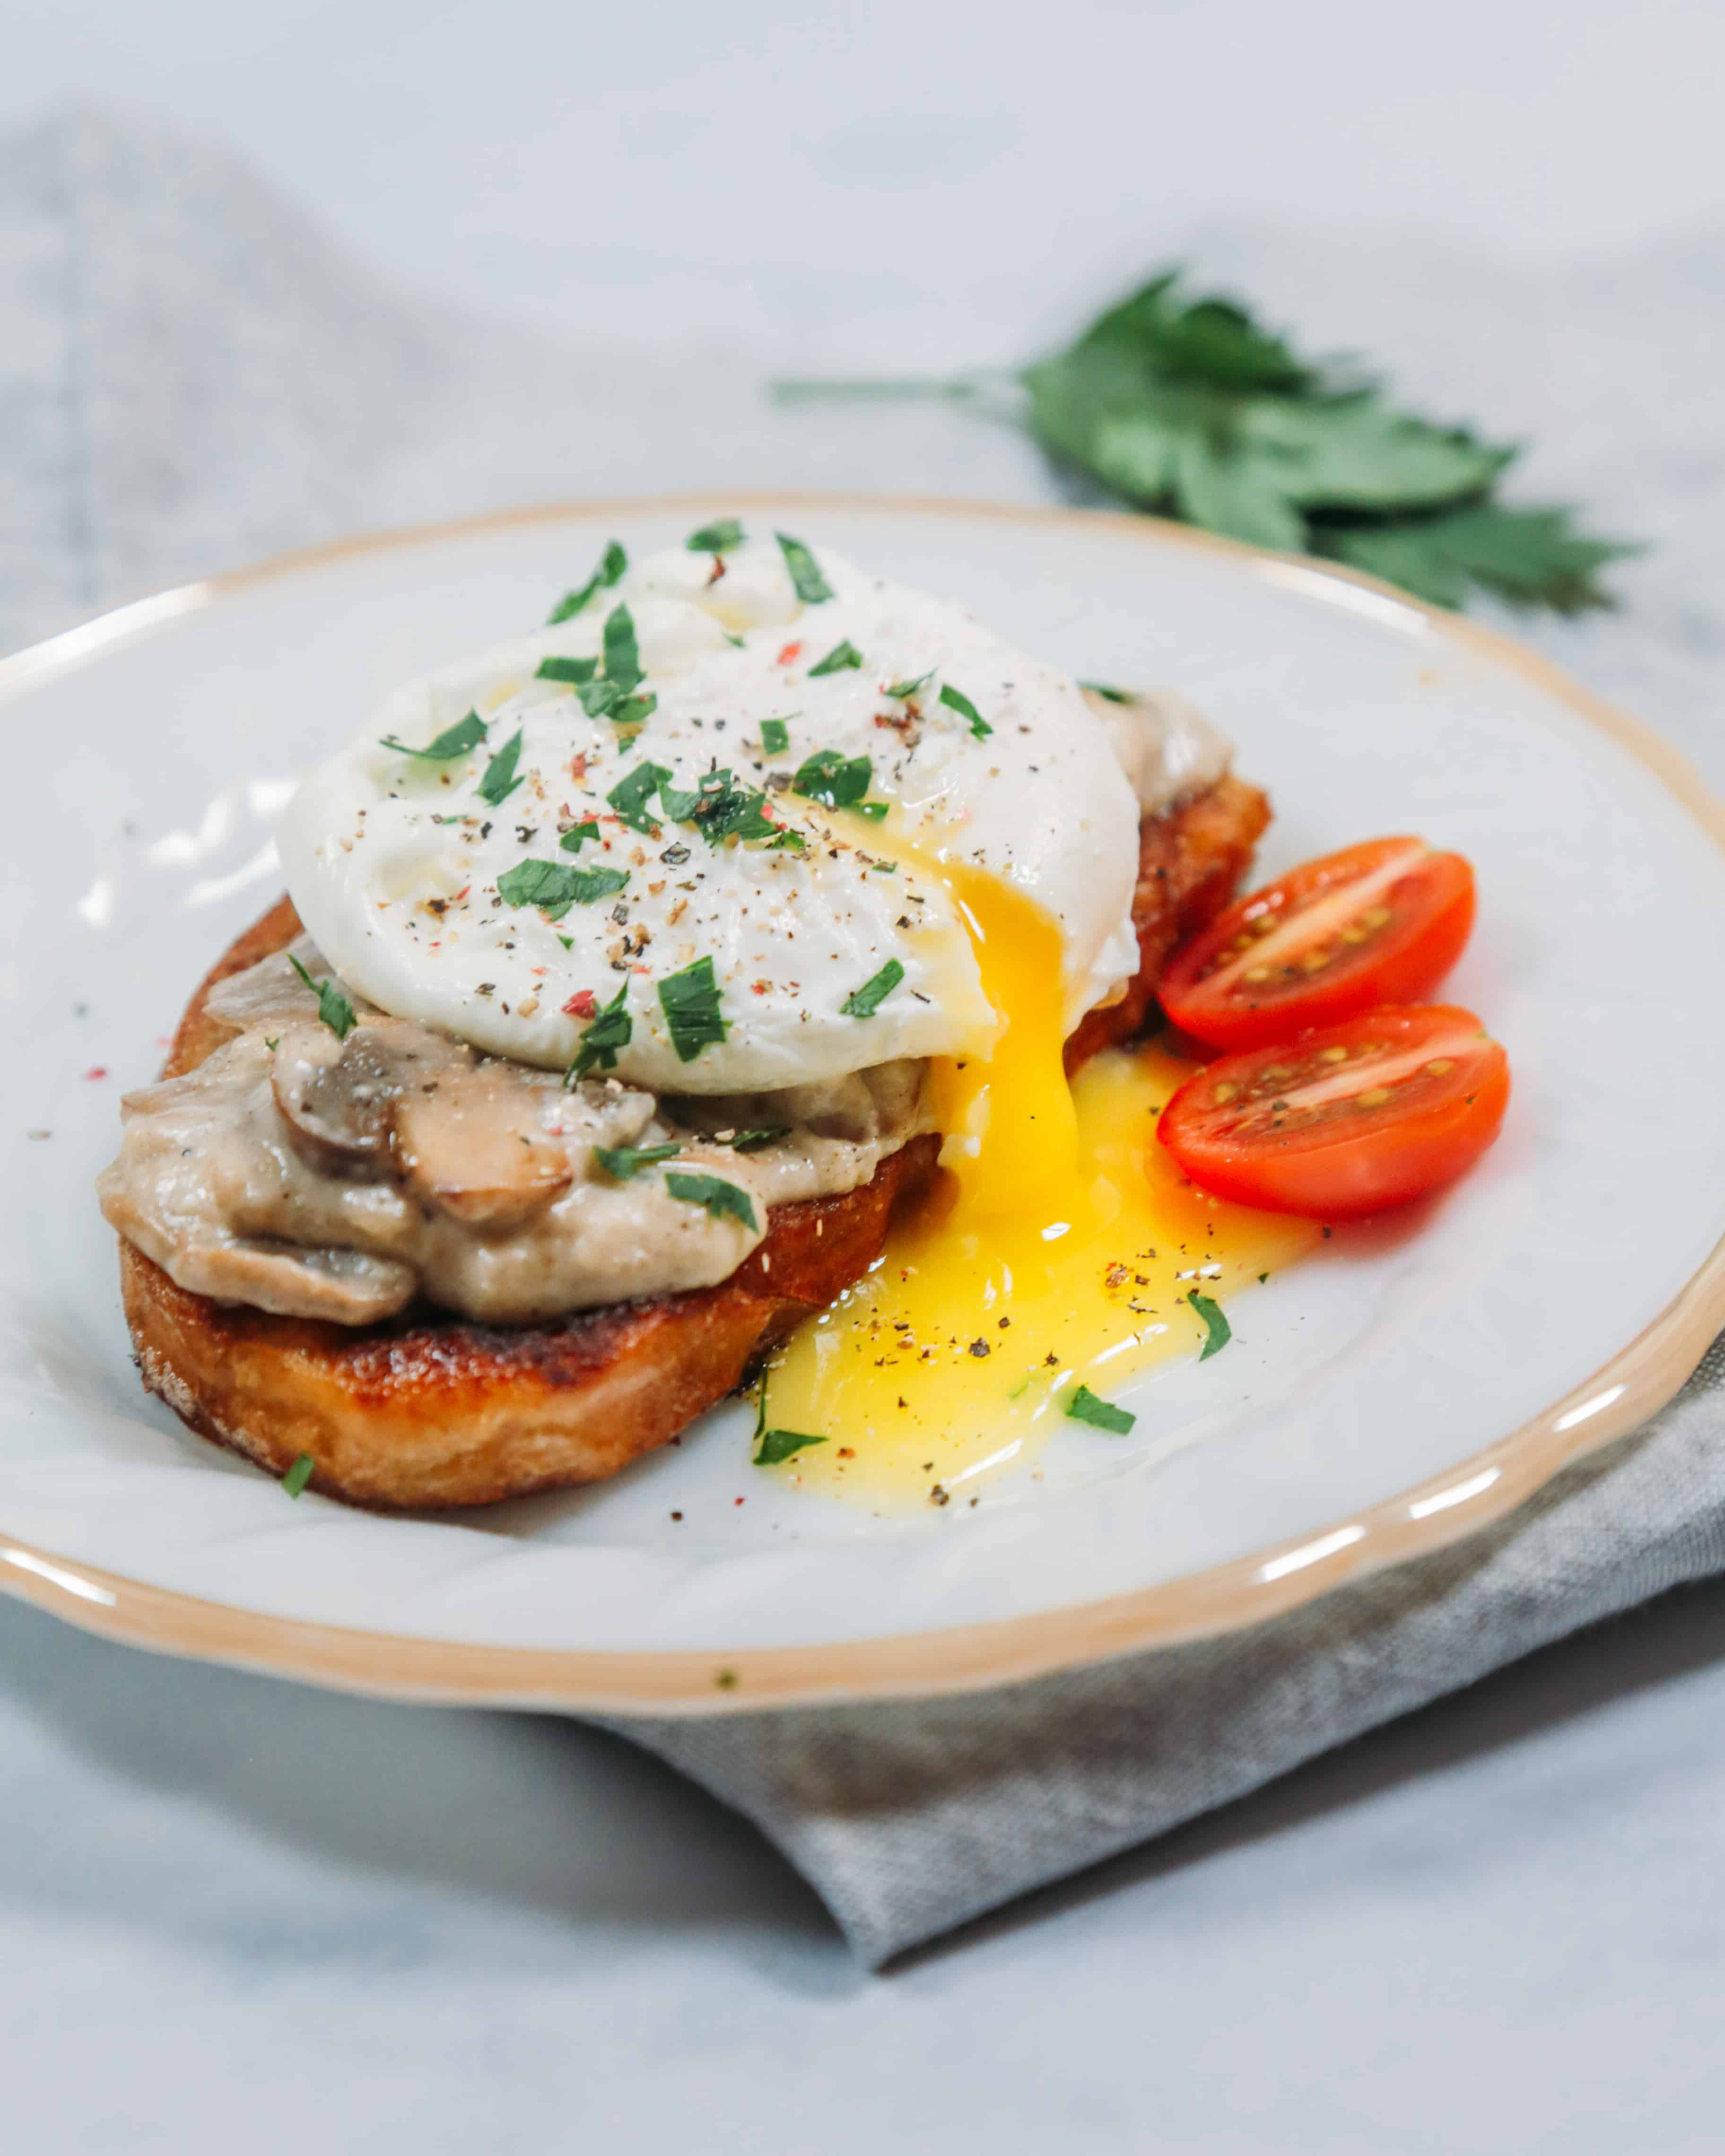 Savoury Russian Grenki recipe made savory with mushrooms and poached egg